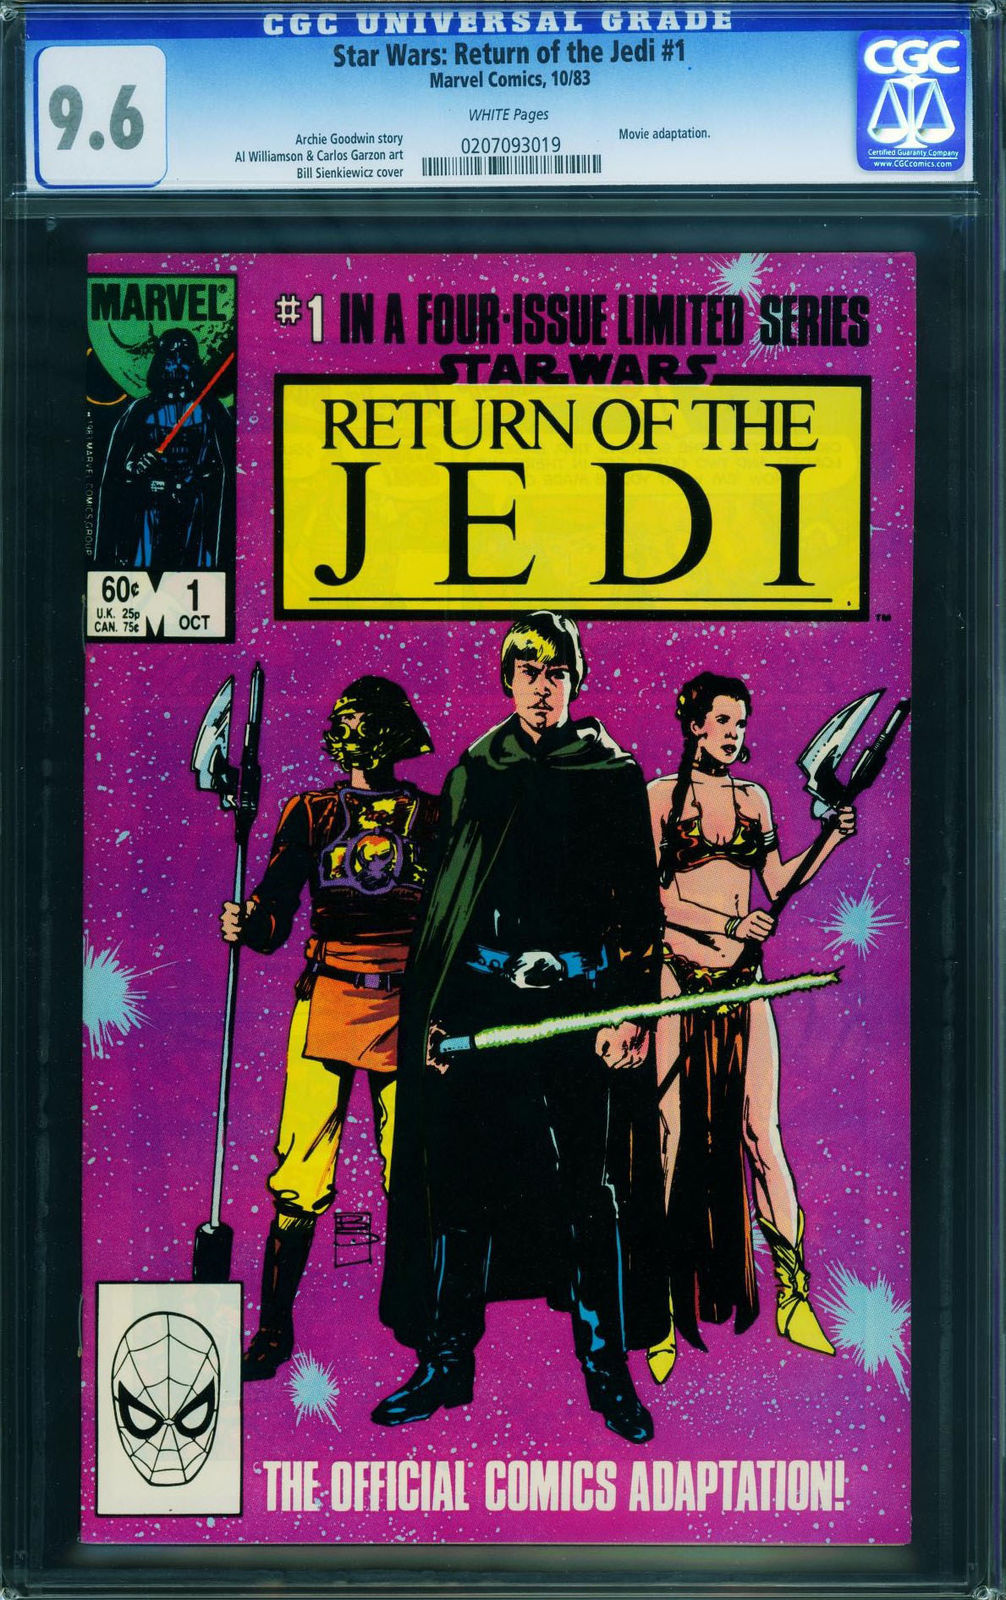 Primary image for Star Wars The Return of the Jedi #1-1983-cgc 9.6 - 0207093019